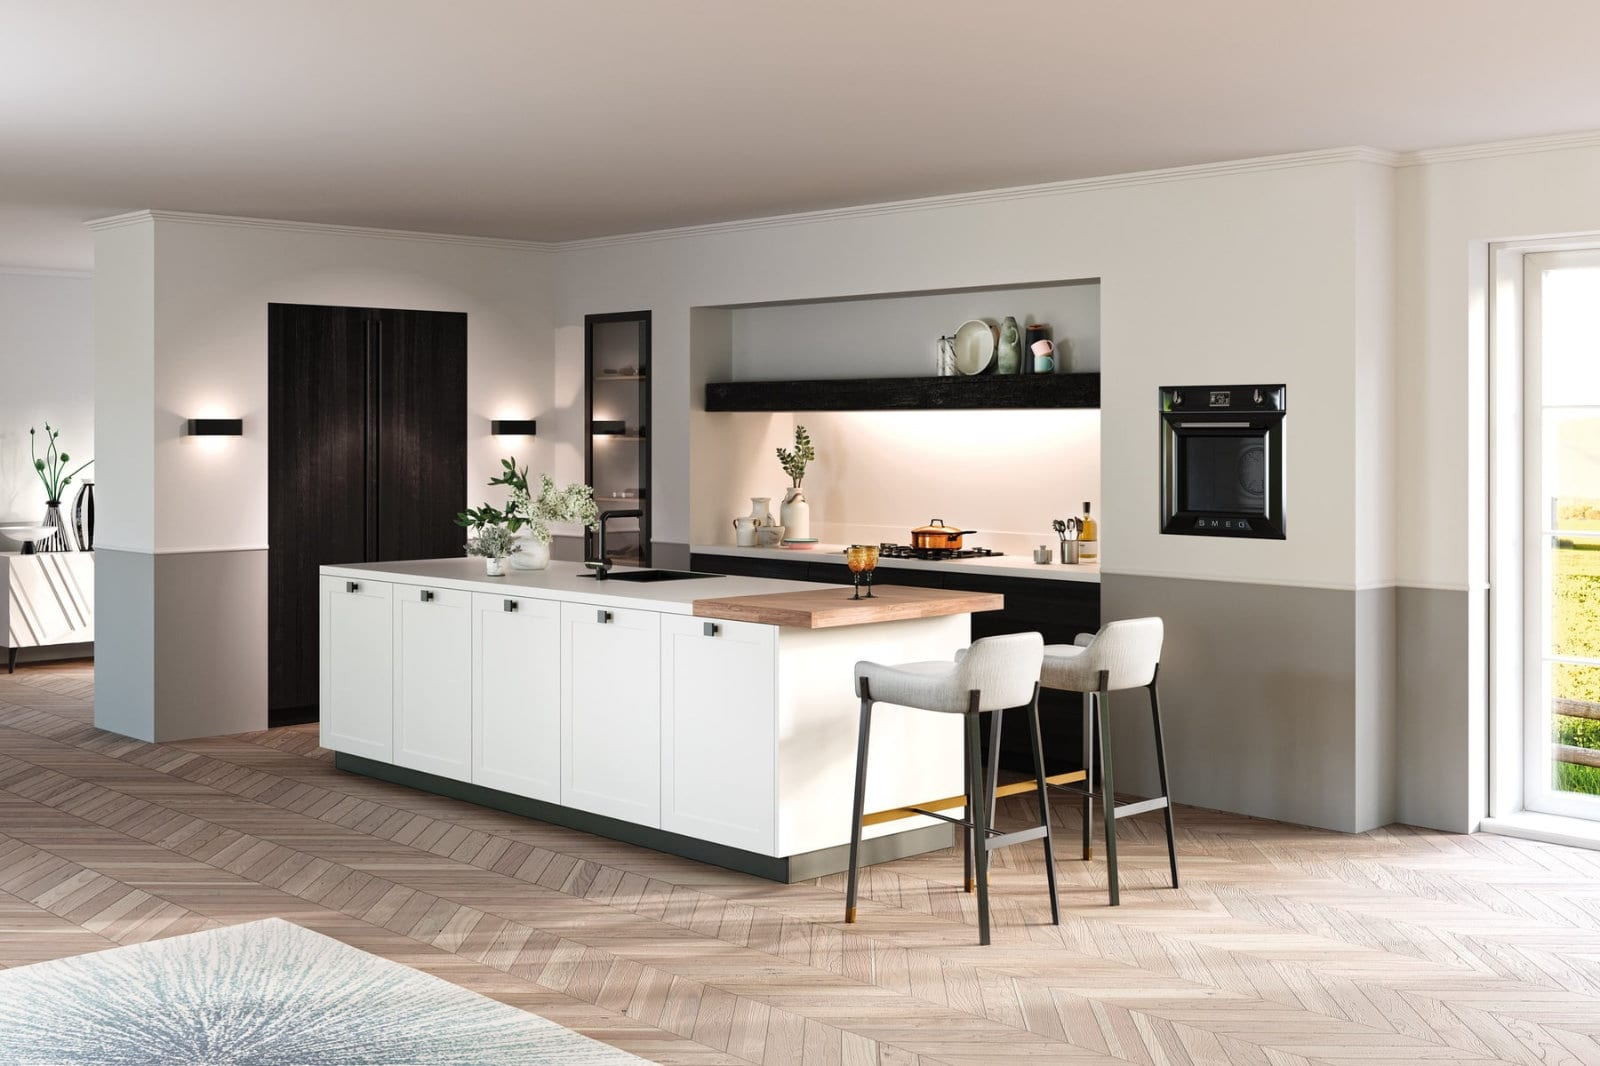 Rotpunkt White Painted Wood Door Kitchen With Cast Iron Handles